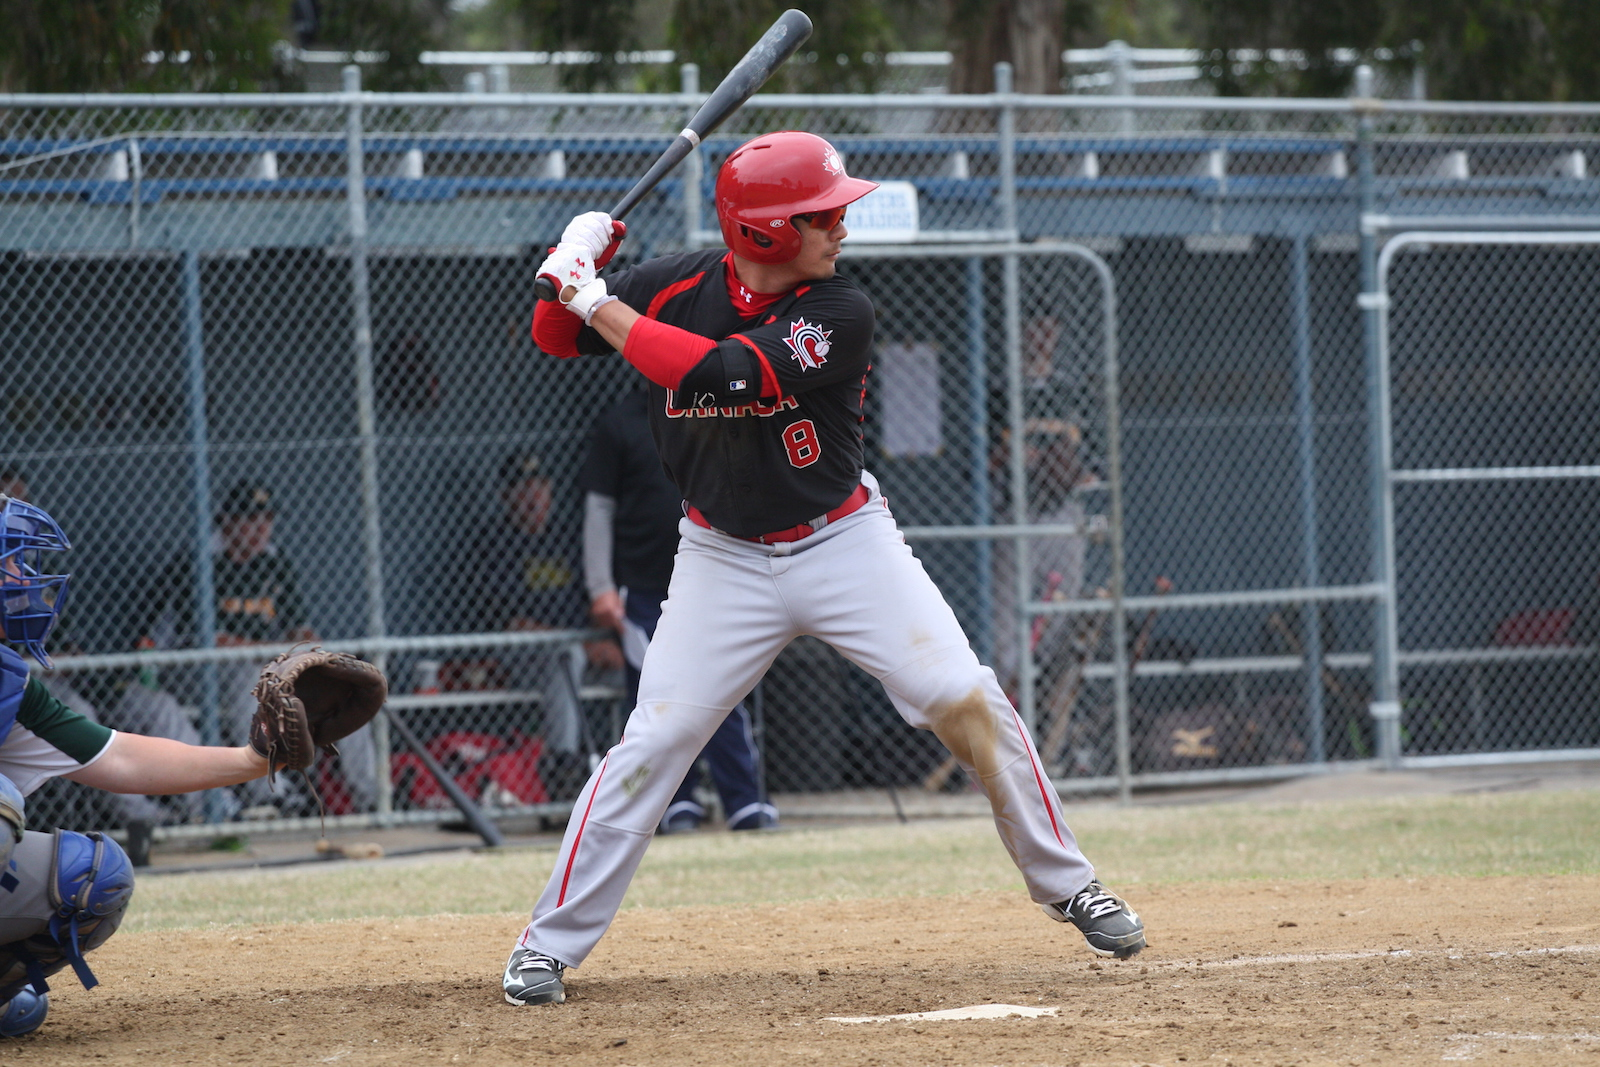 INF Royce Ando (Mississauga, Ont.) hit his second home run down under as Canada lost to Australia.